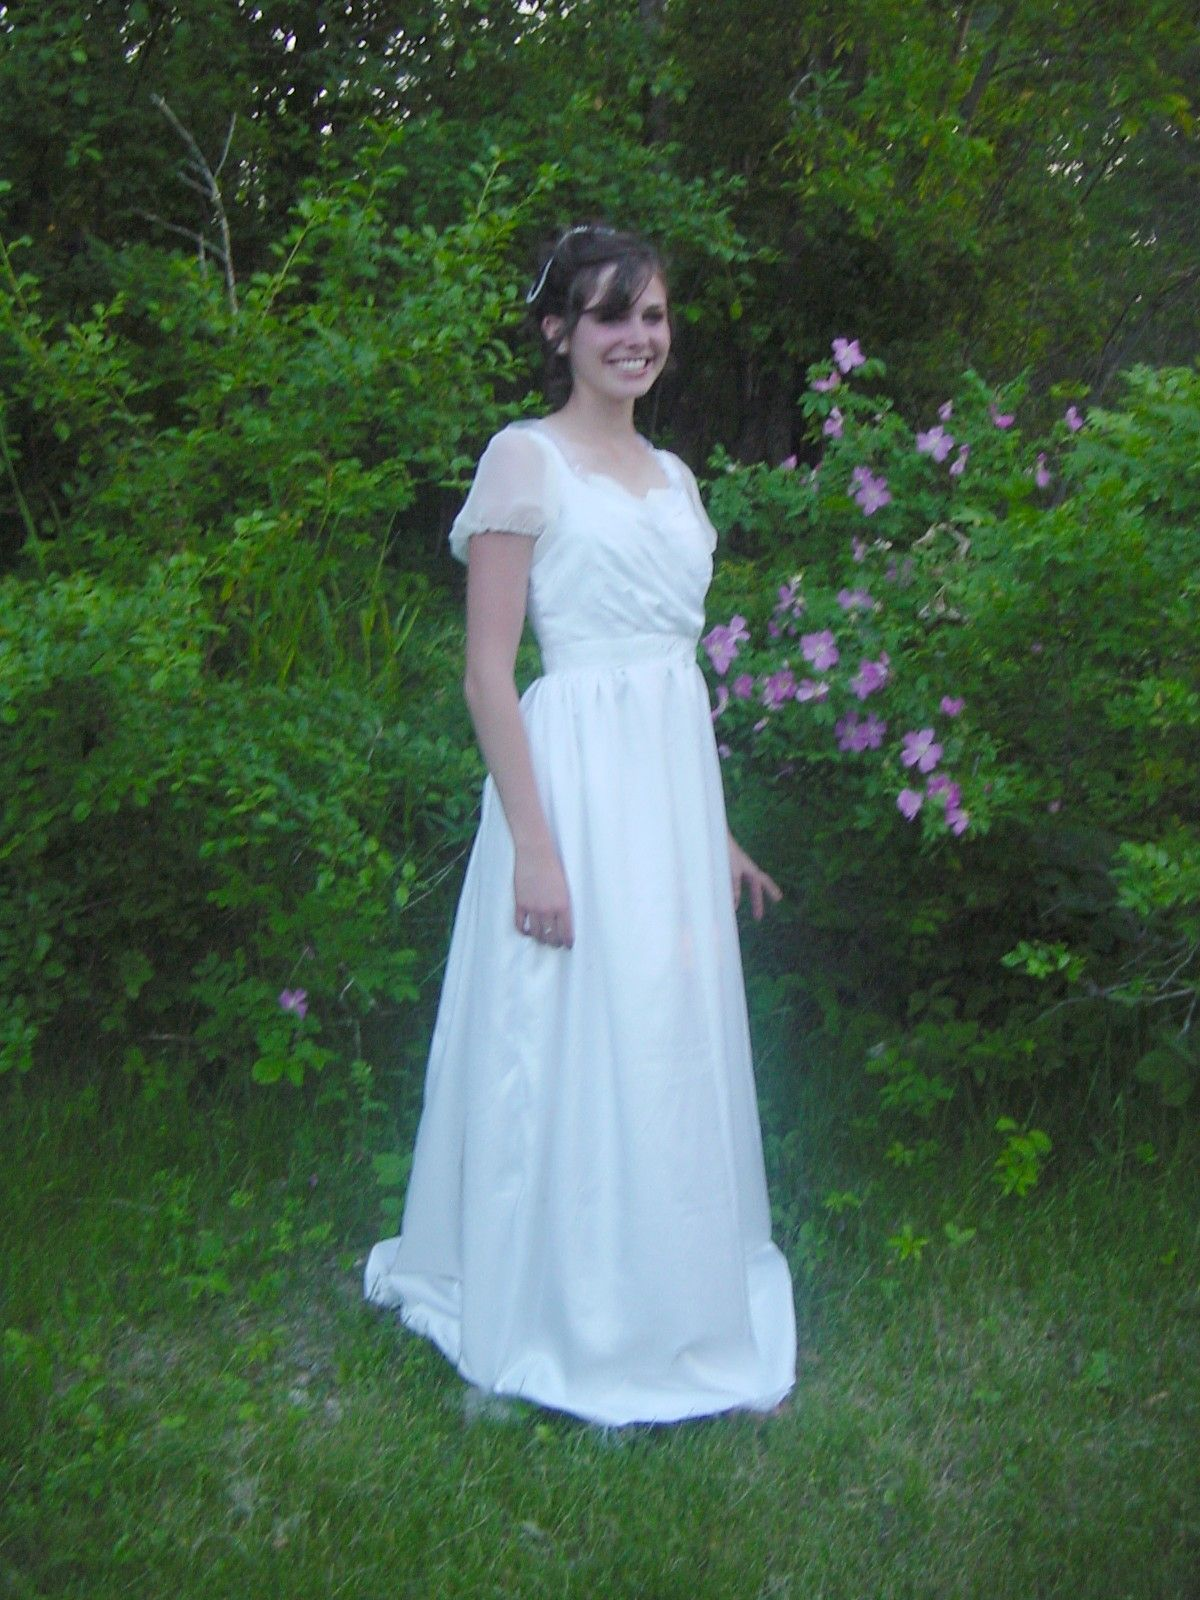 Pride and Prejudice wedding dress | weddings | Pinterest | Pride ...